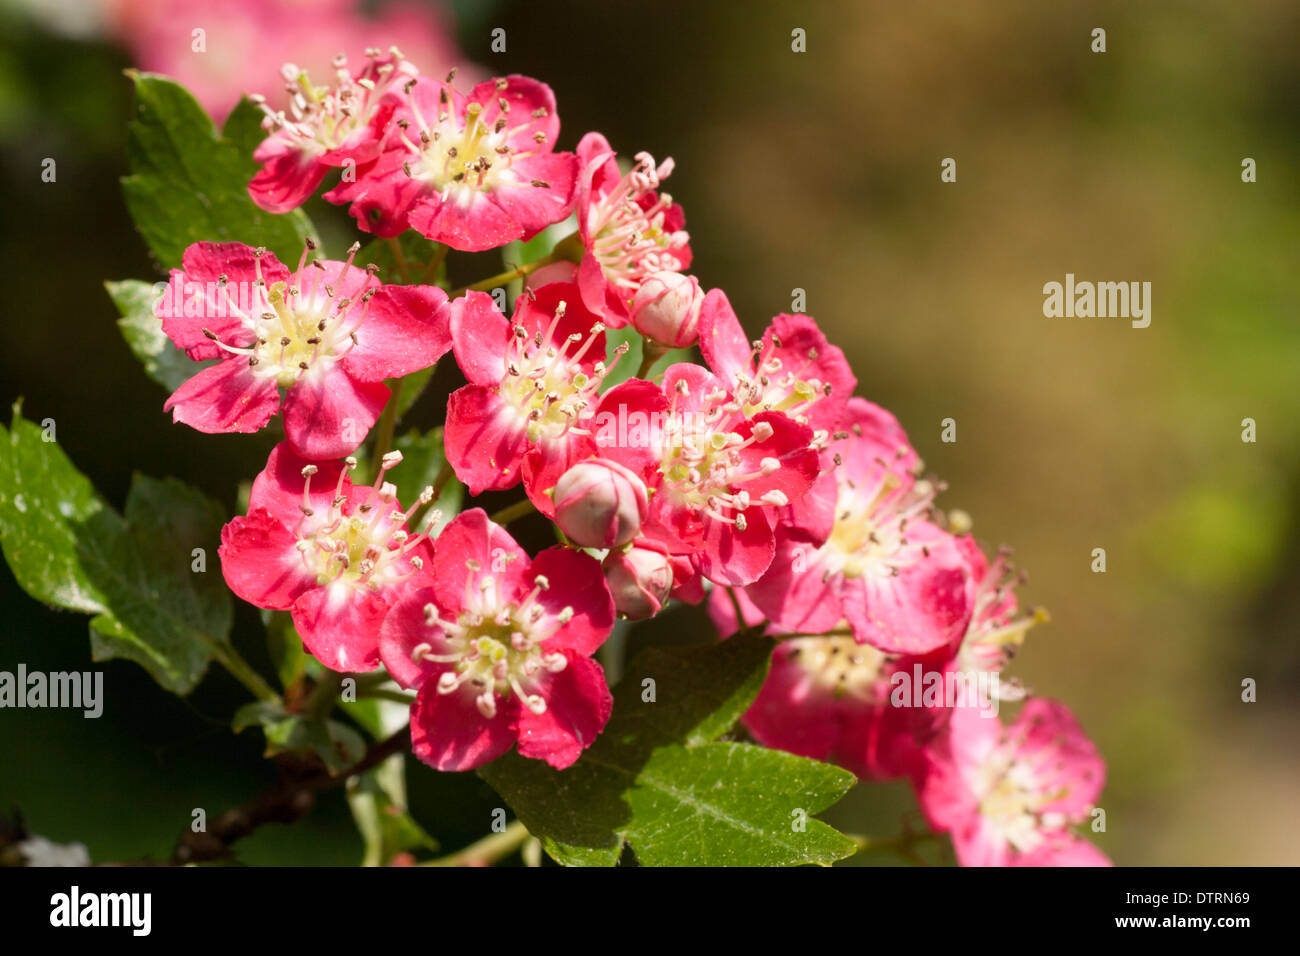 Flowers Of The Small Spring Flowering Red Hawthorn Tree Crataegus